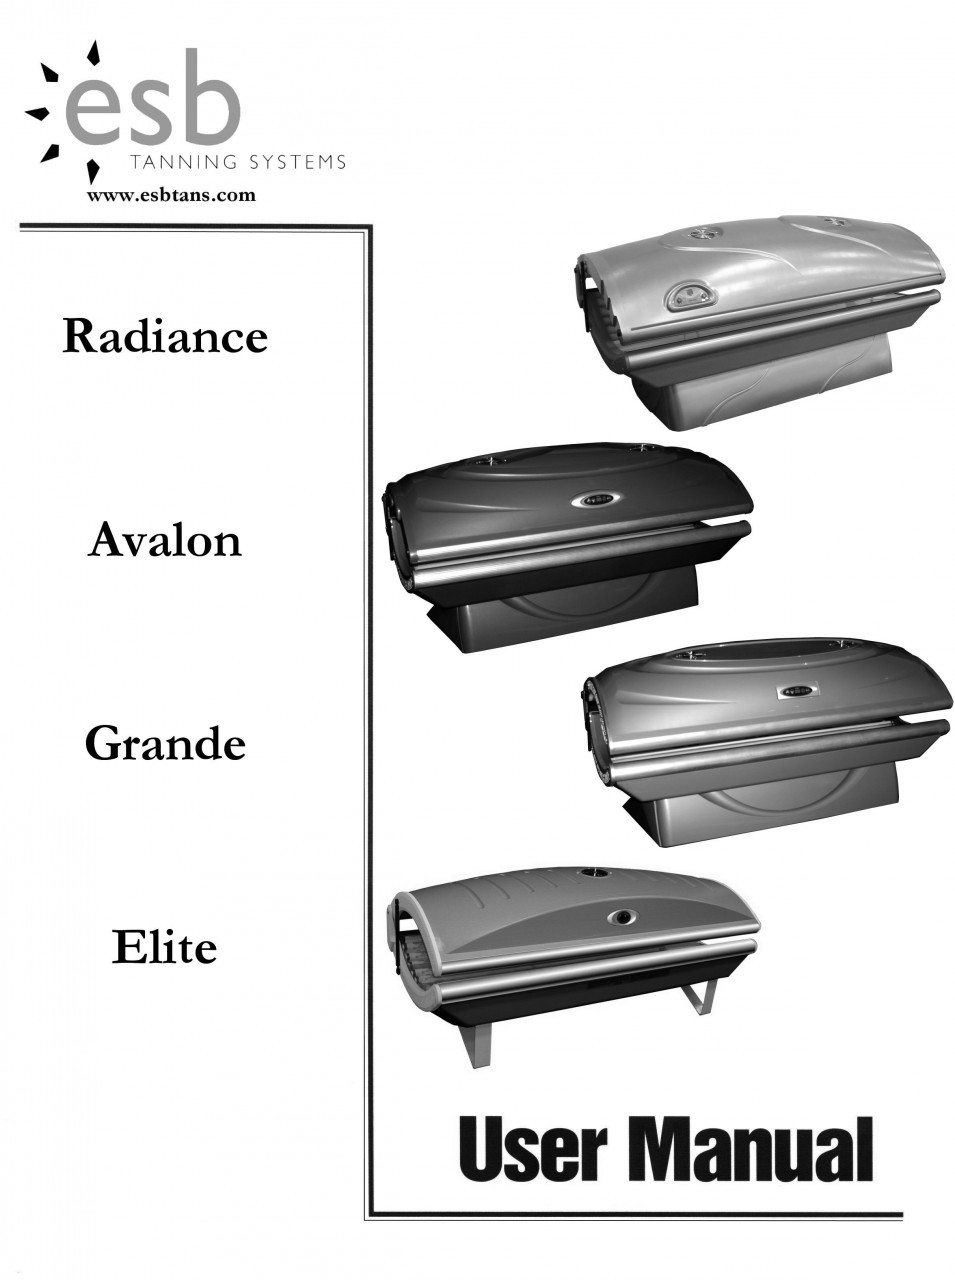 tanning bed manual esb tanning bed parts info rh esbtans com ESB Tanning Bed Parts List ESB Visio Diagram